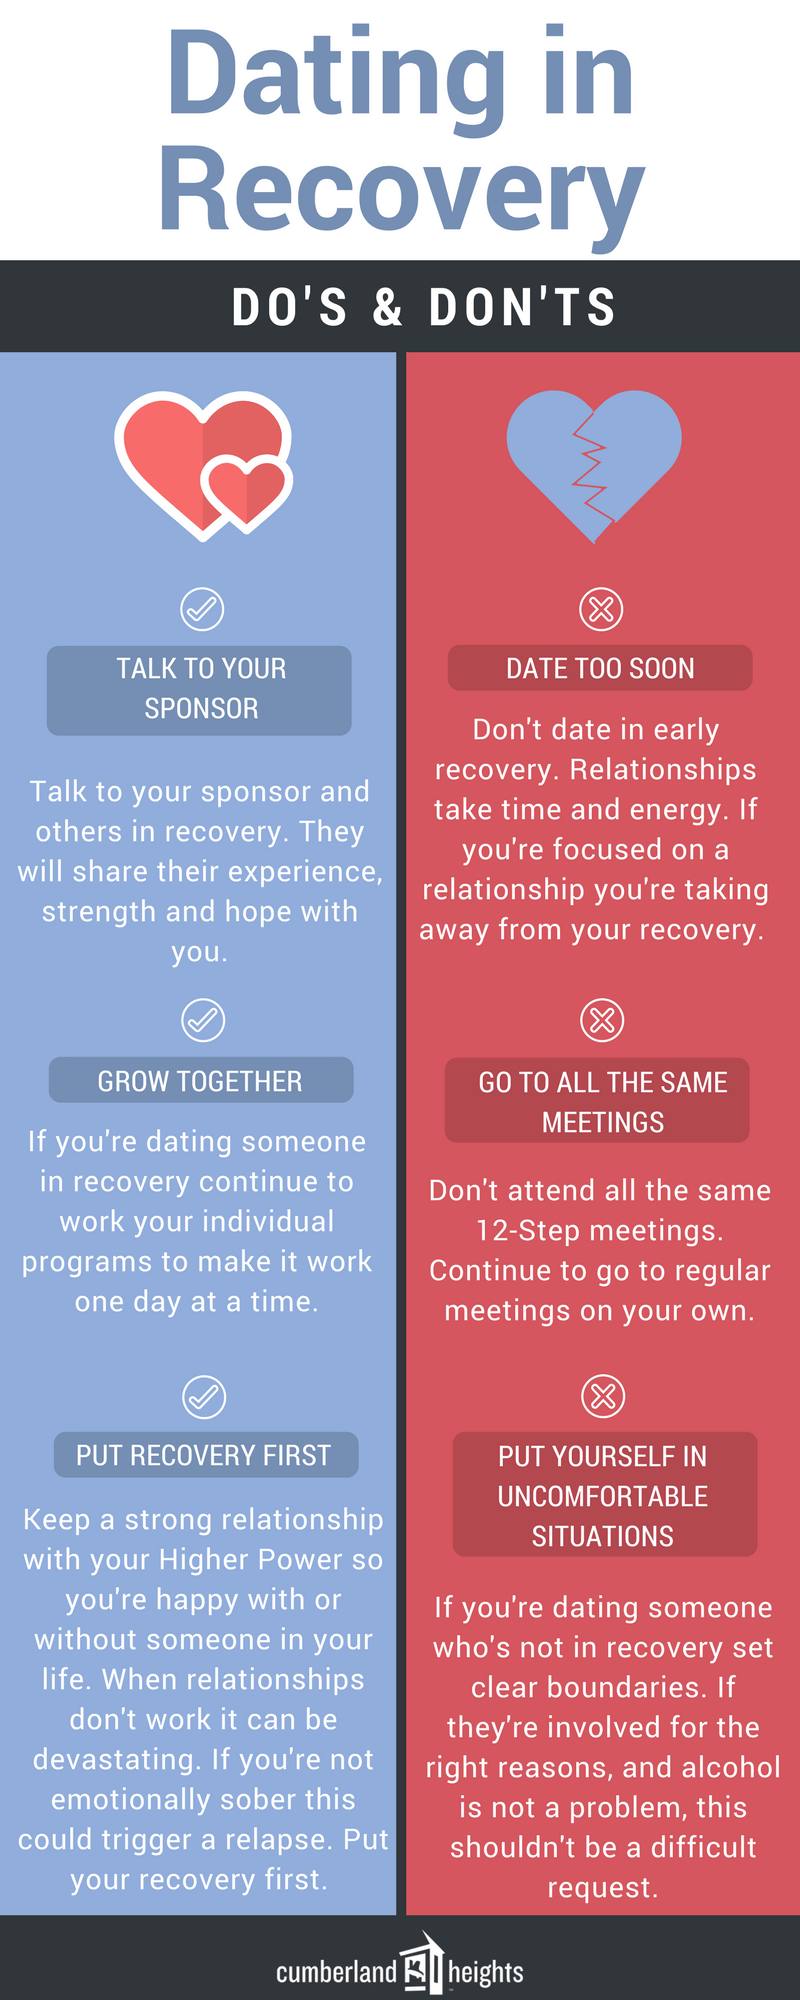 Dating in Recovery - Do's & Don'ts Infographic - Cumberland Heights Recovery Blog